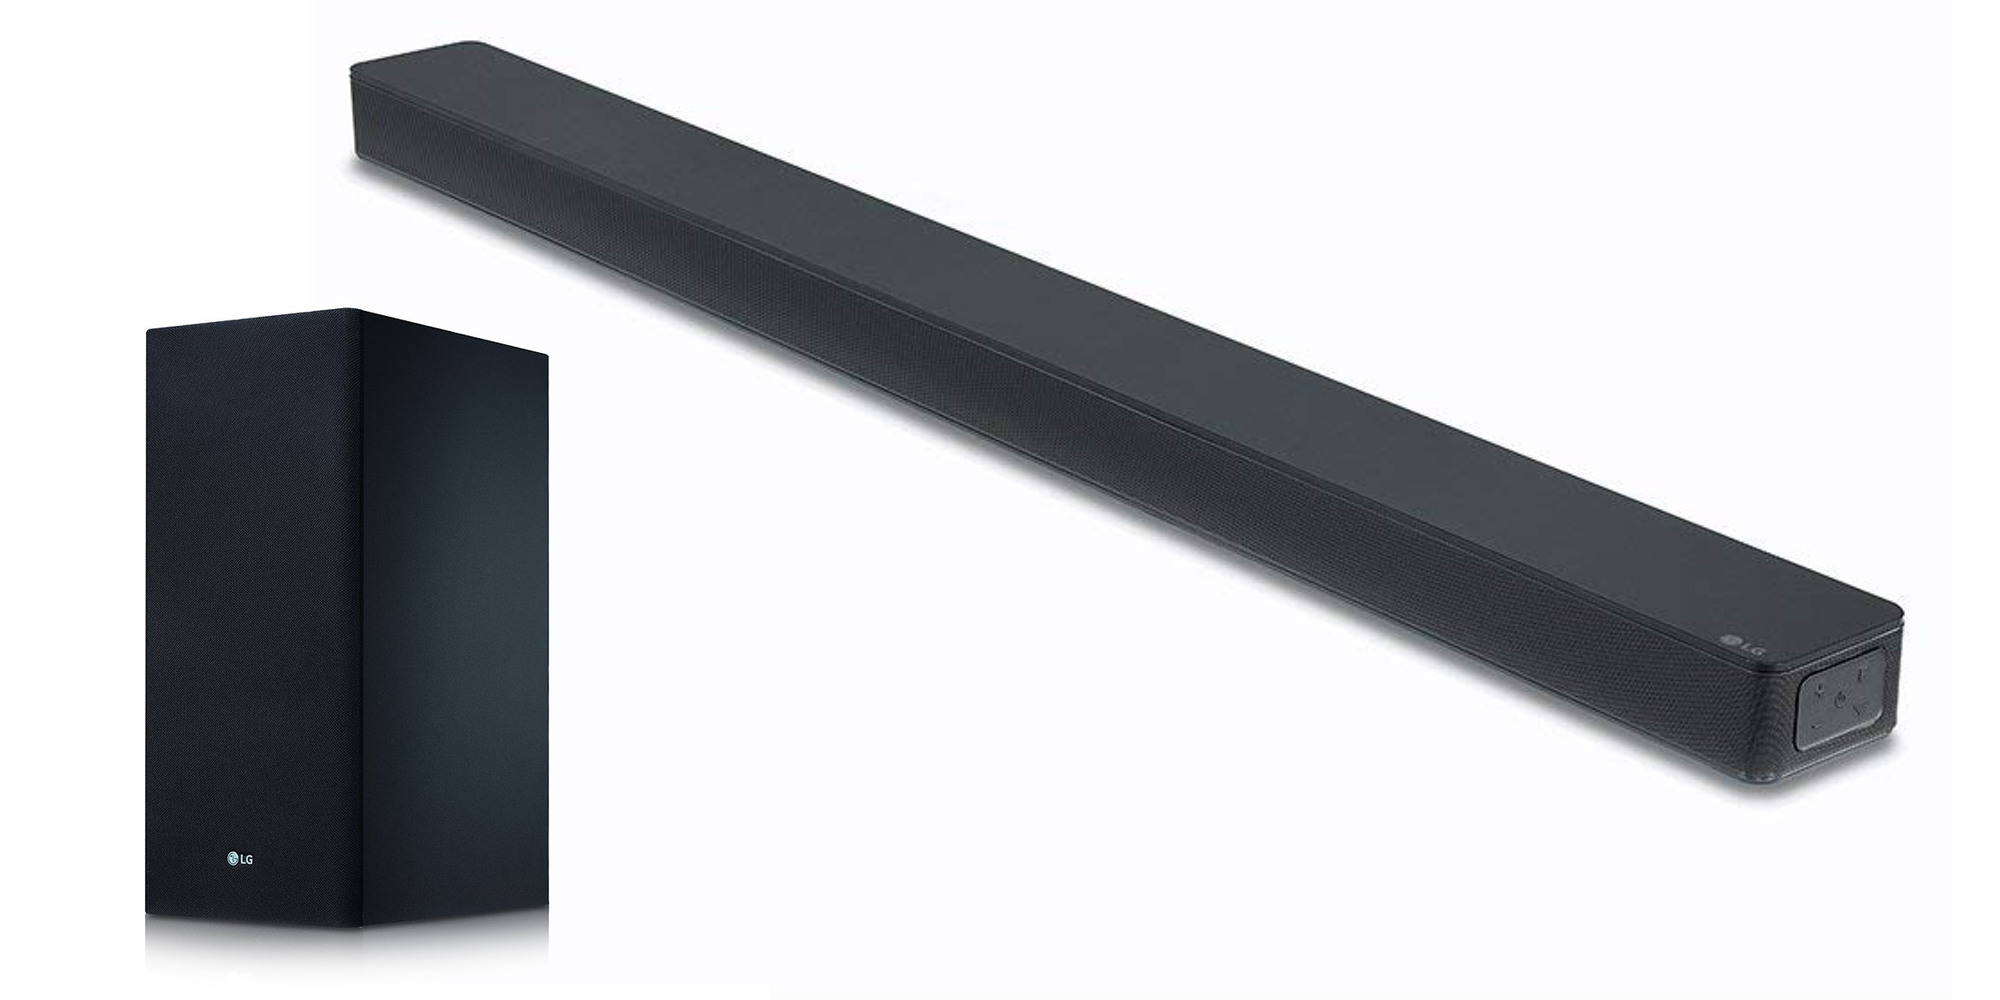 LG's SK6Y 2.1-Channel Sound Bar features virtual surround sound and more at $197 (Reg. $290)